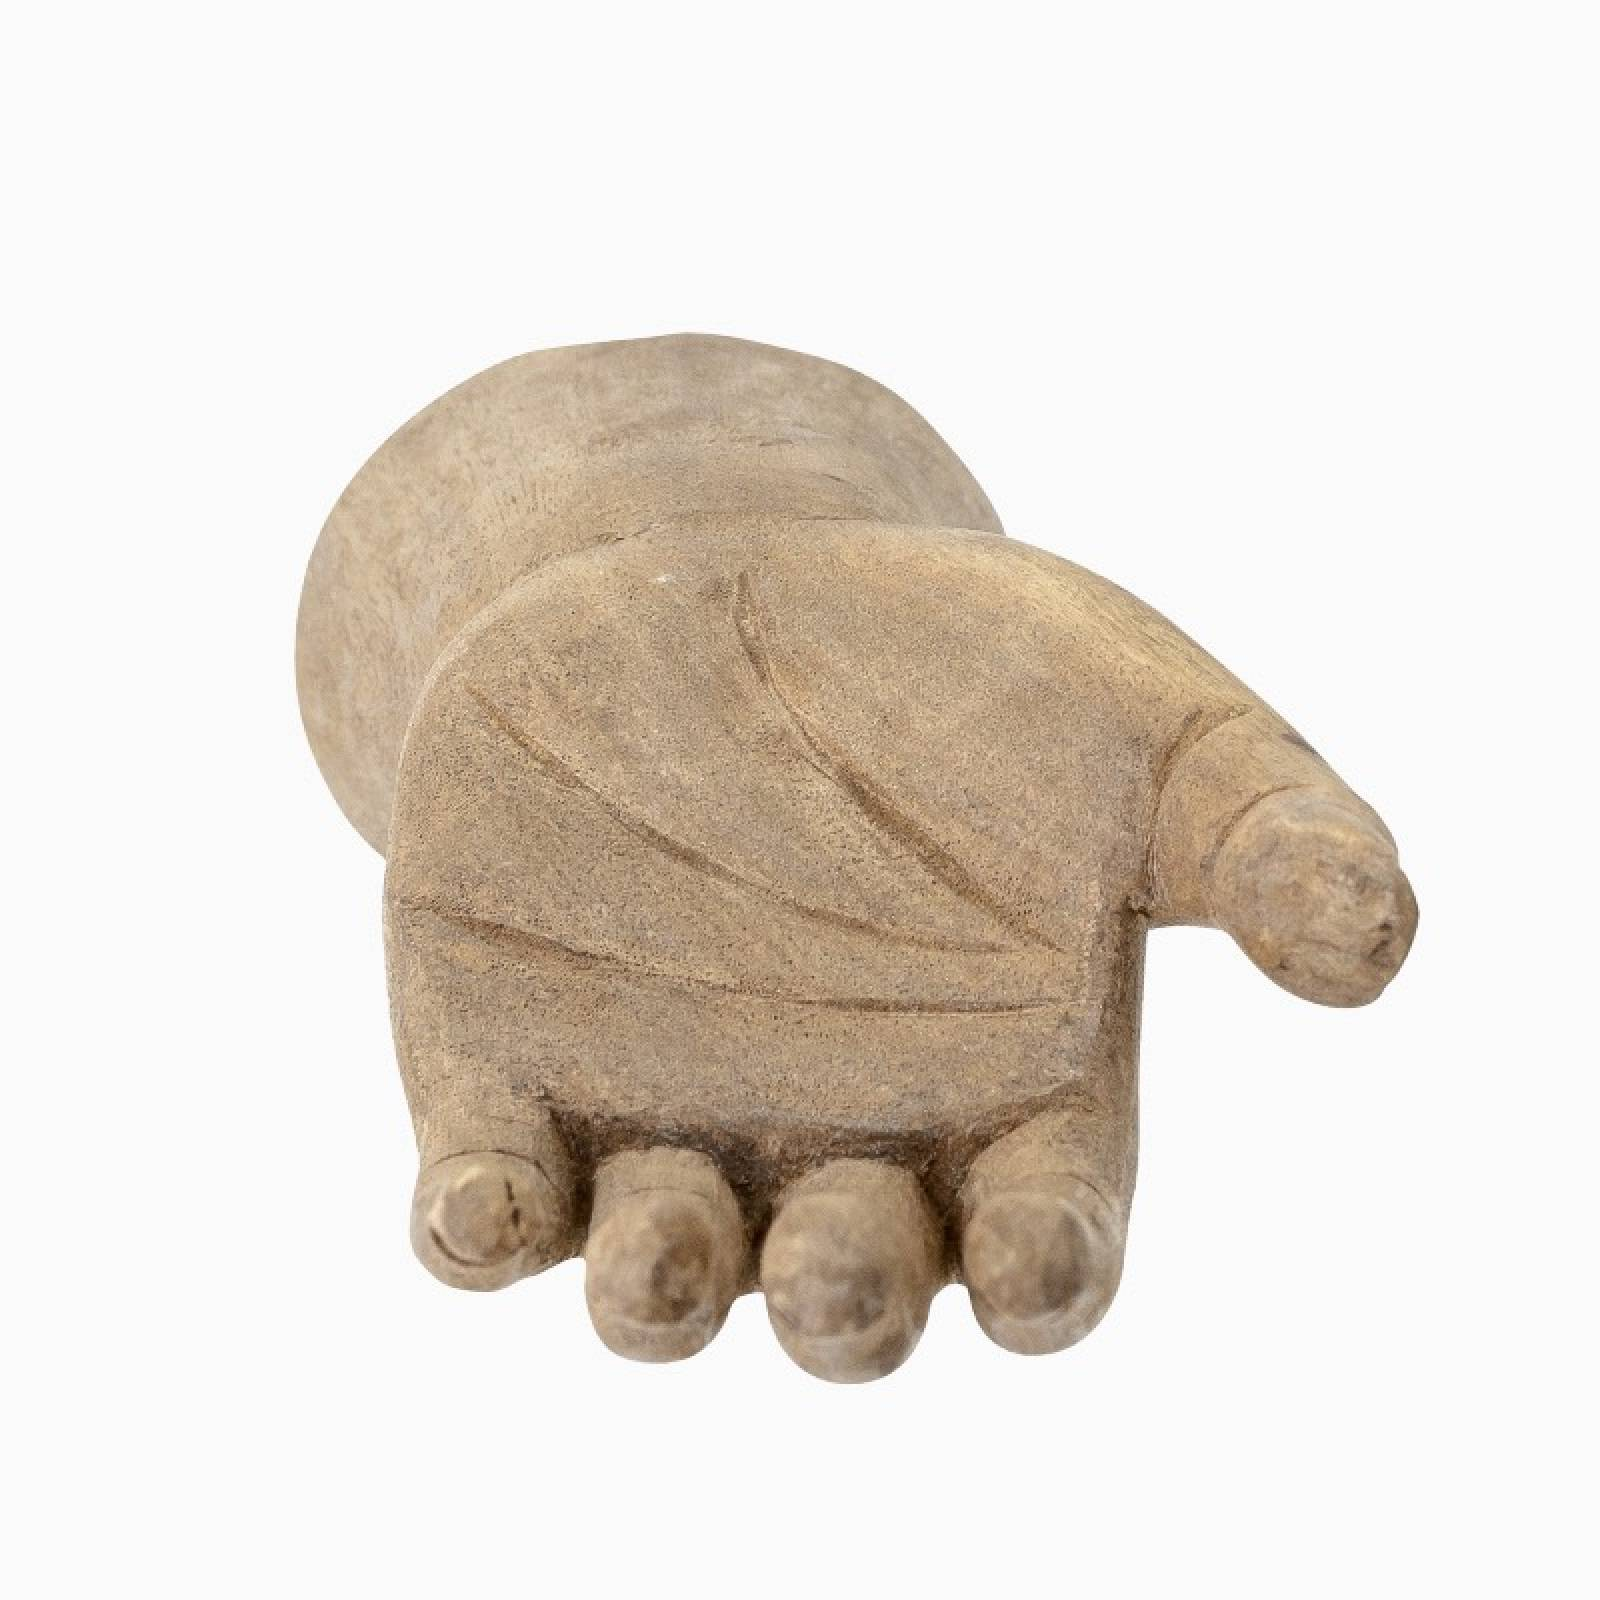 Wooden Hand Wall Mounting Decoration thumbnails